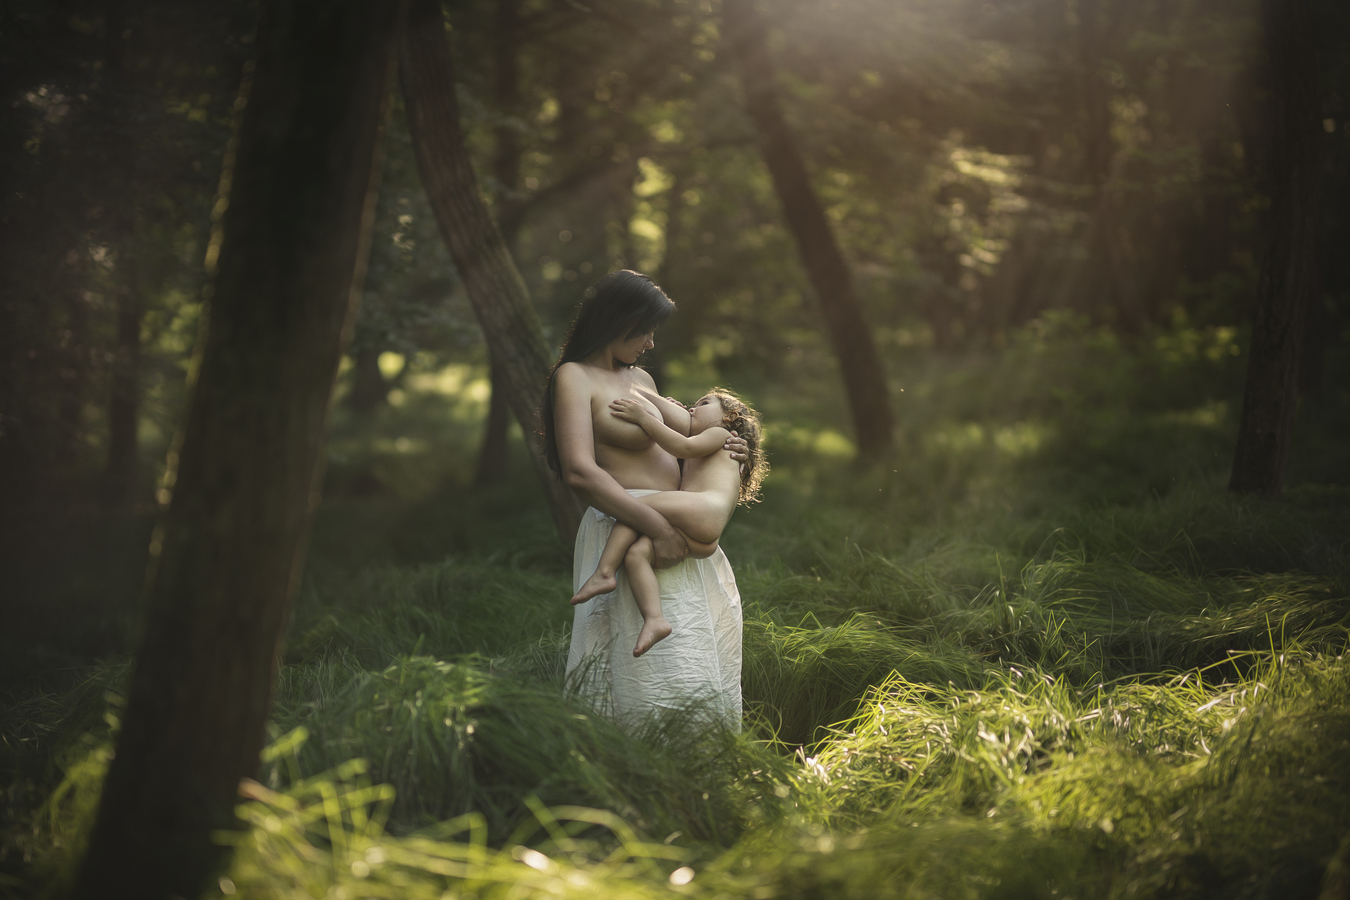 Maternity-strenght of nature